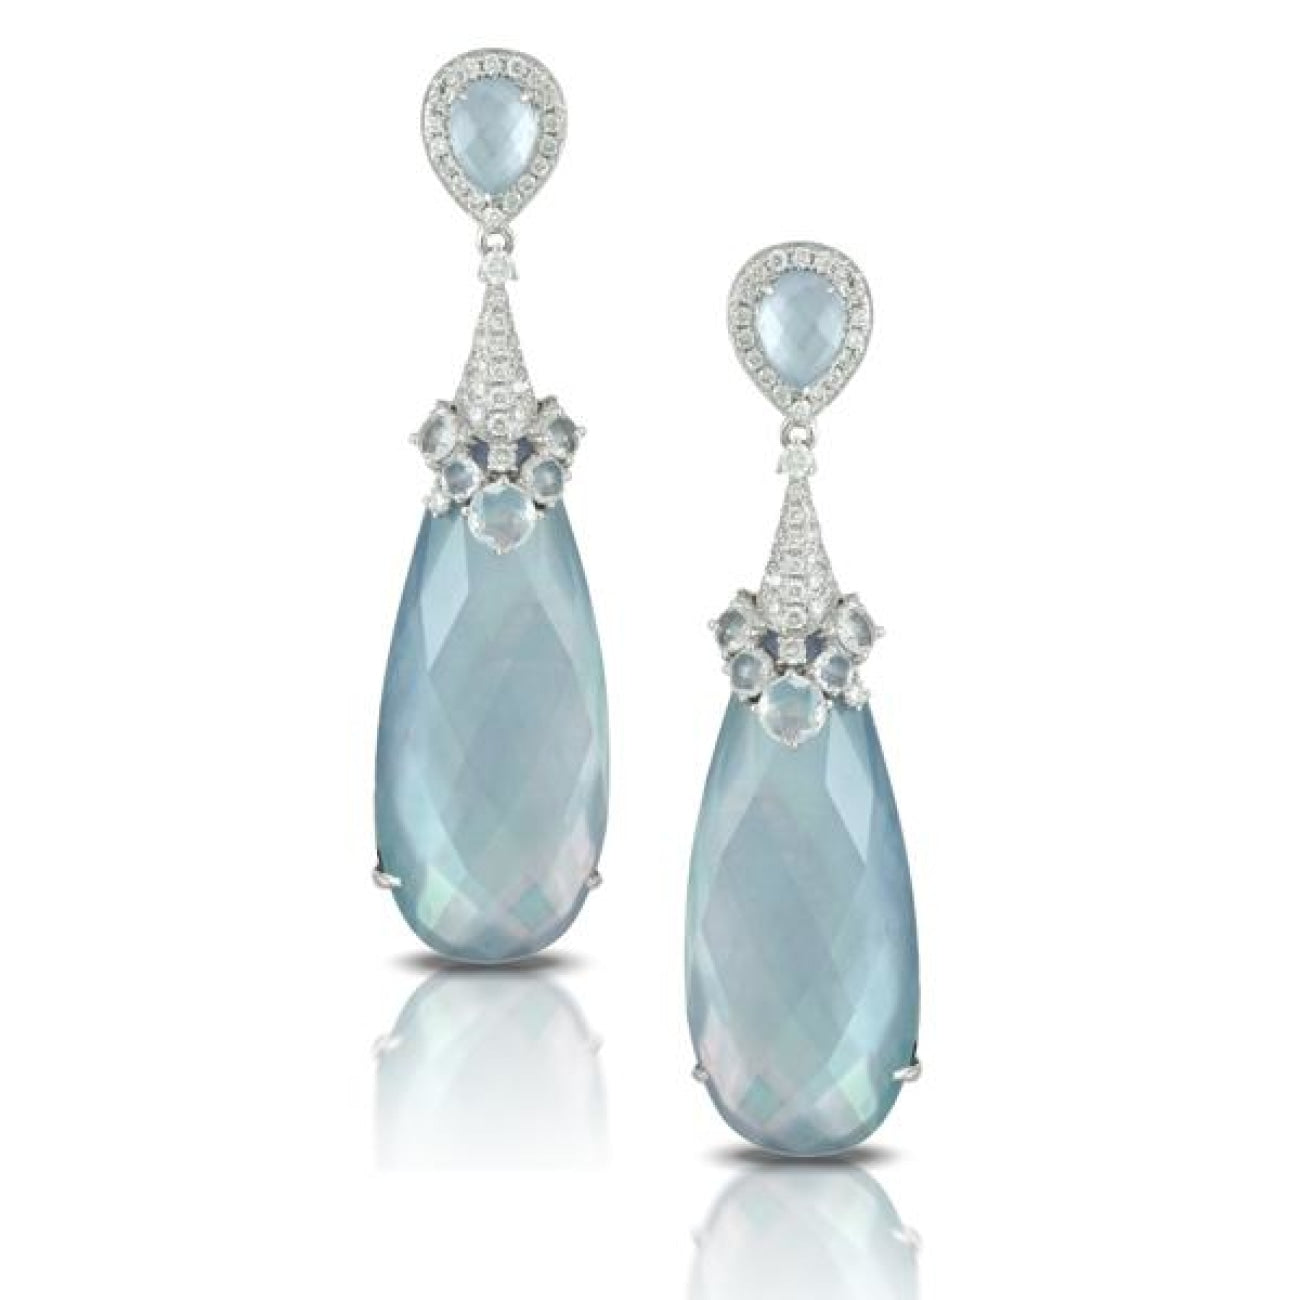 Doves Jewelry - Ivory Sky Collection Earrings | Manfredi Jewels